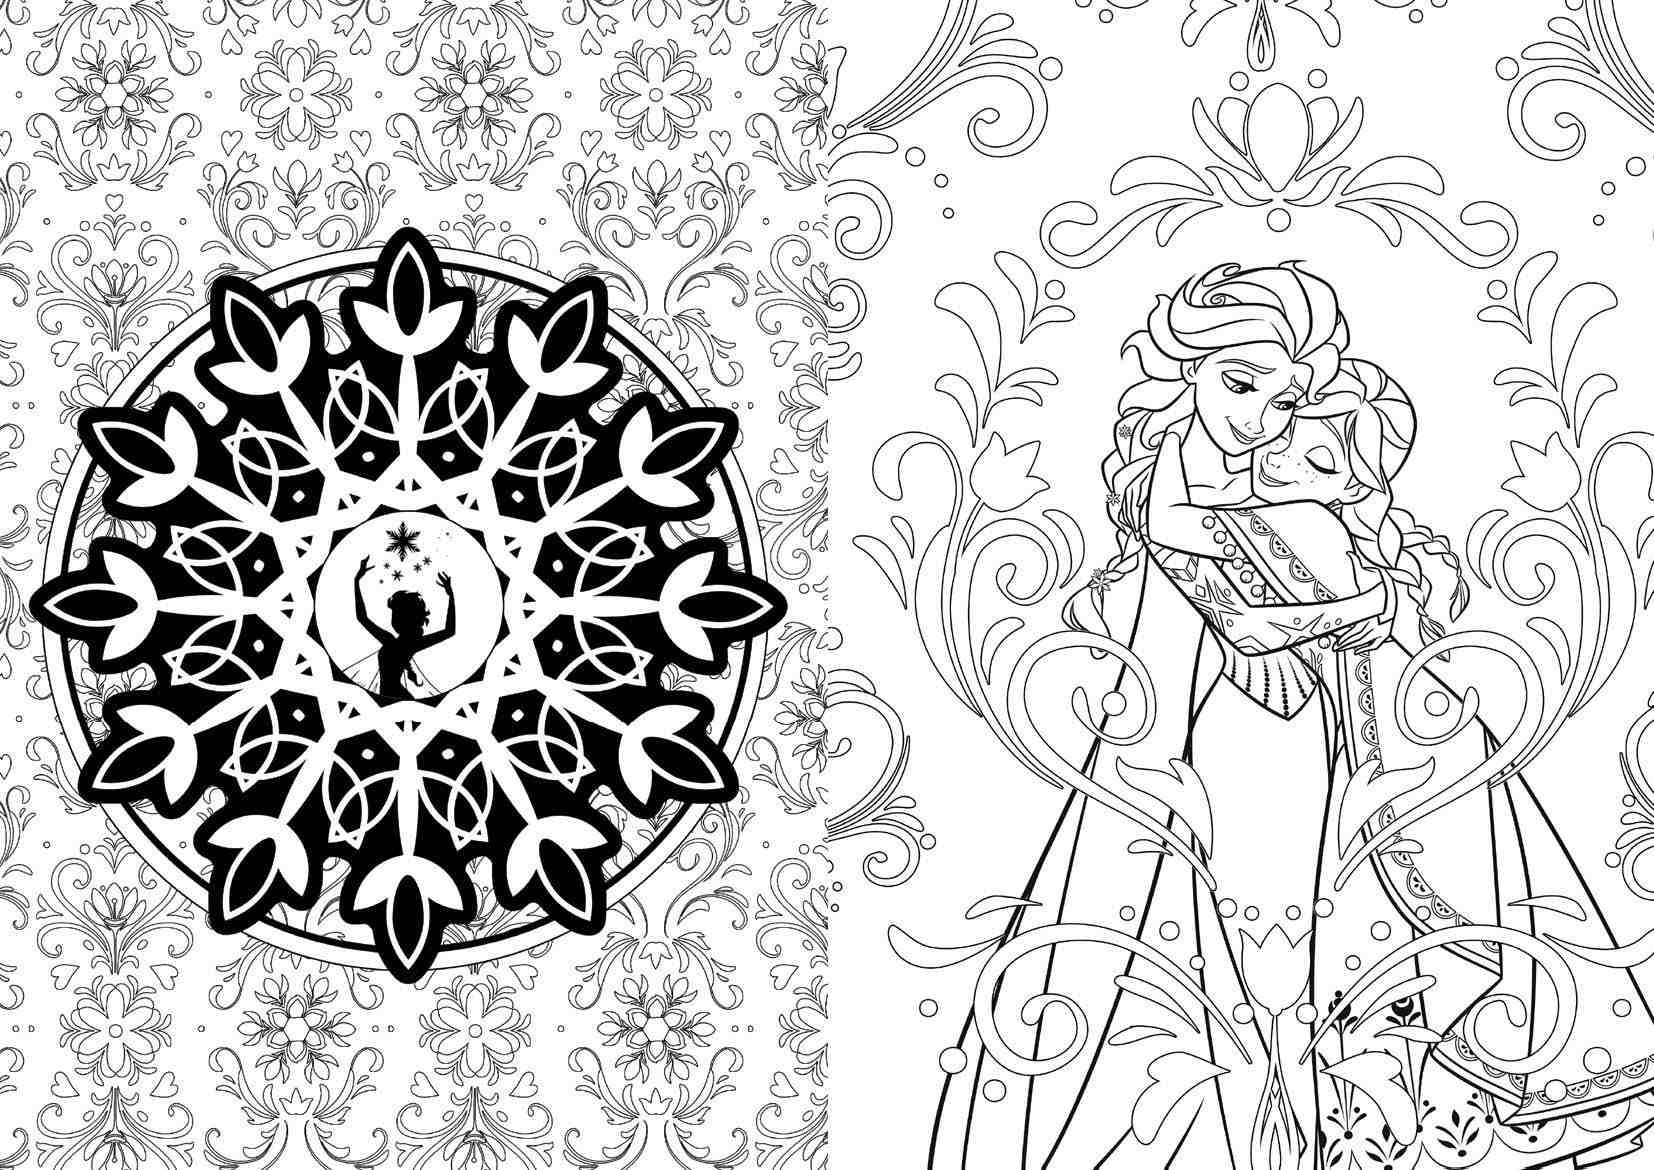 Disney offers coloring books for adults Coloring books for young adults